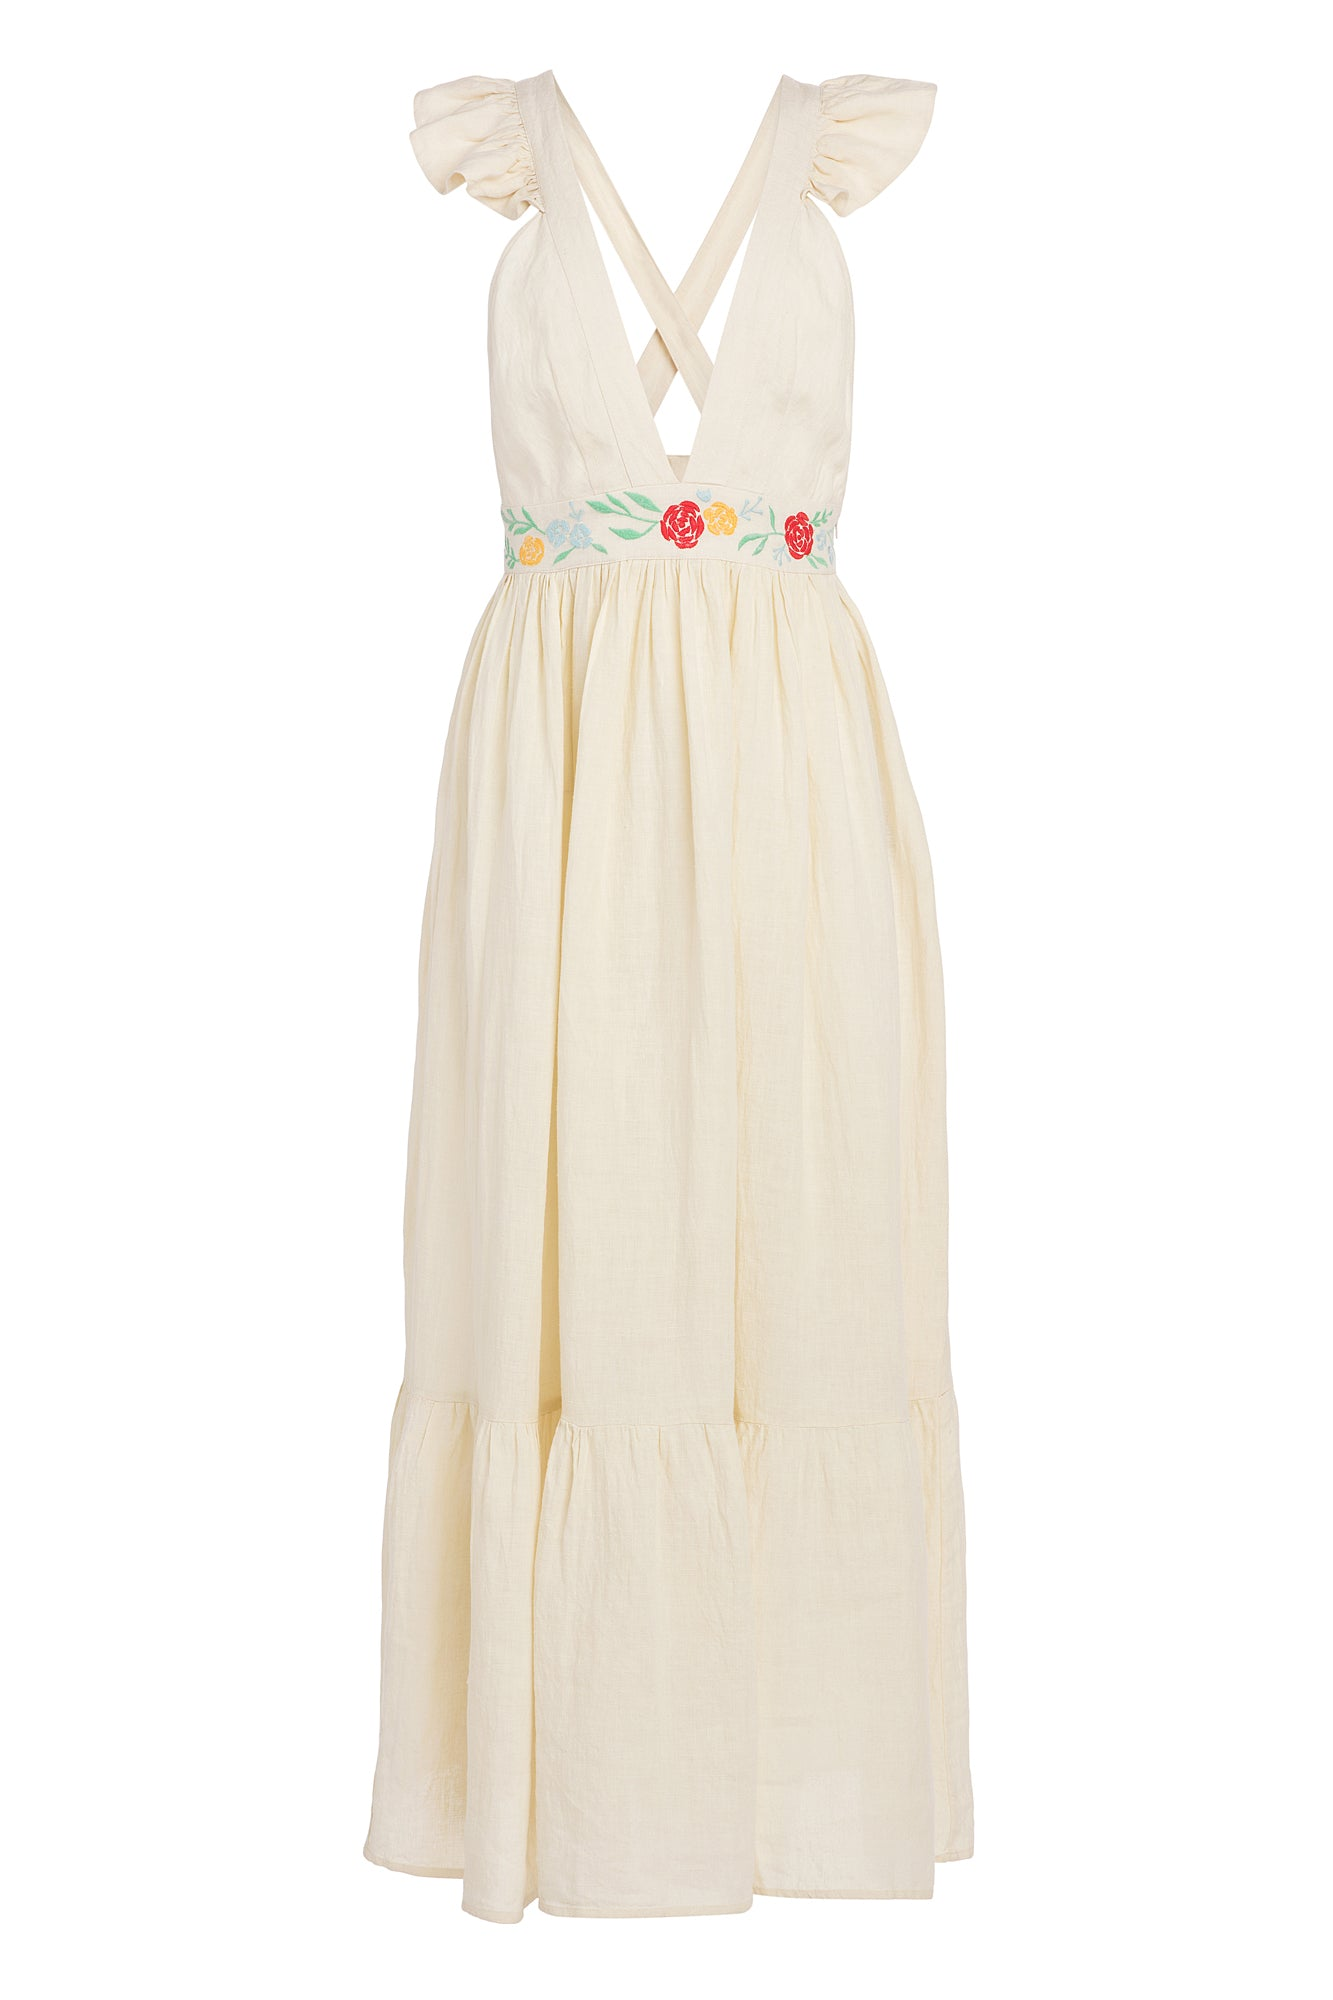 Carolina K Penelope Dress in Cream Peonies